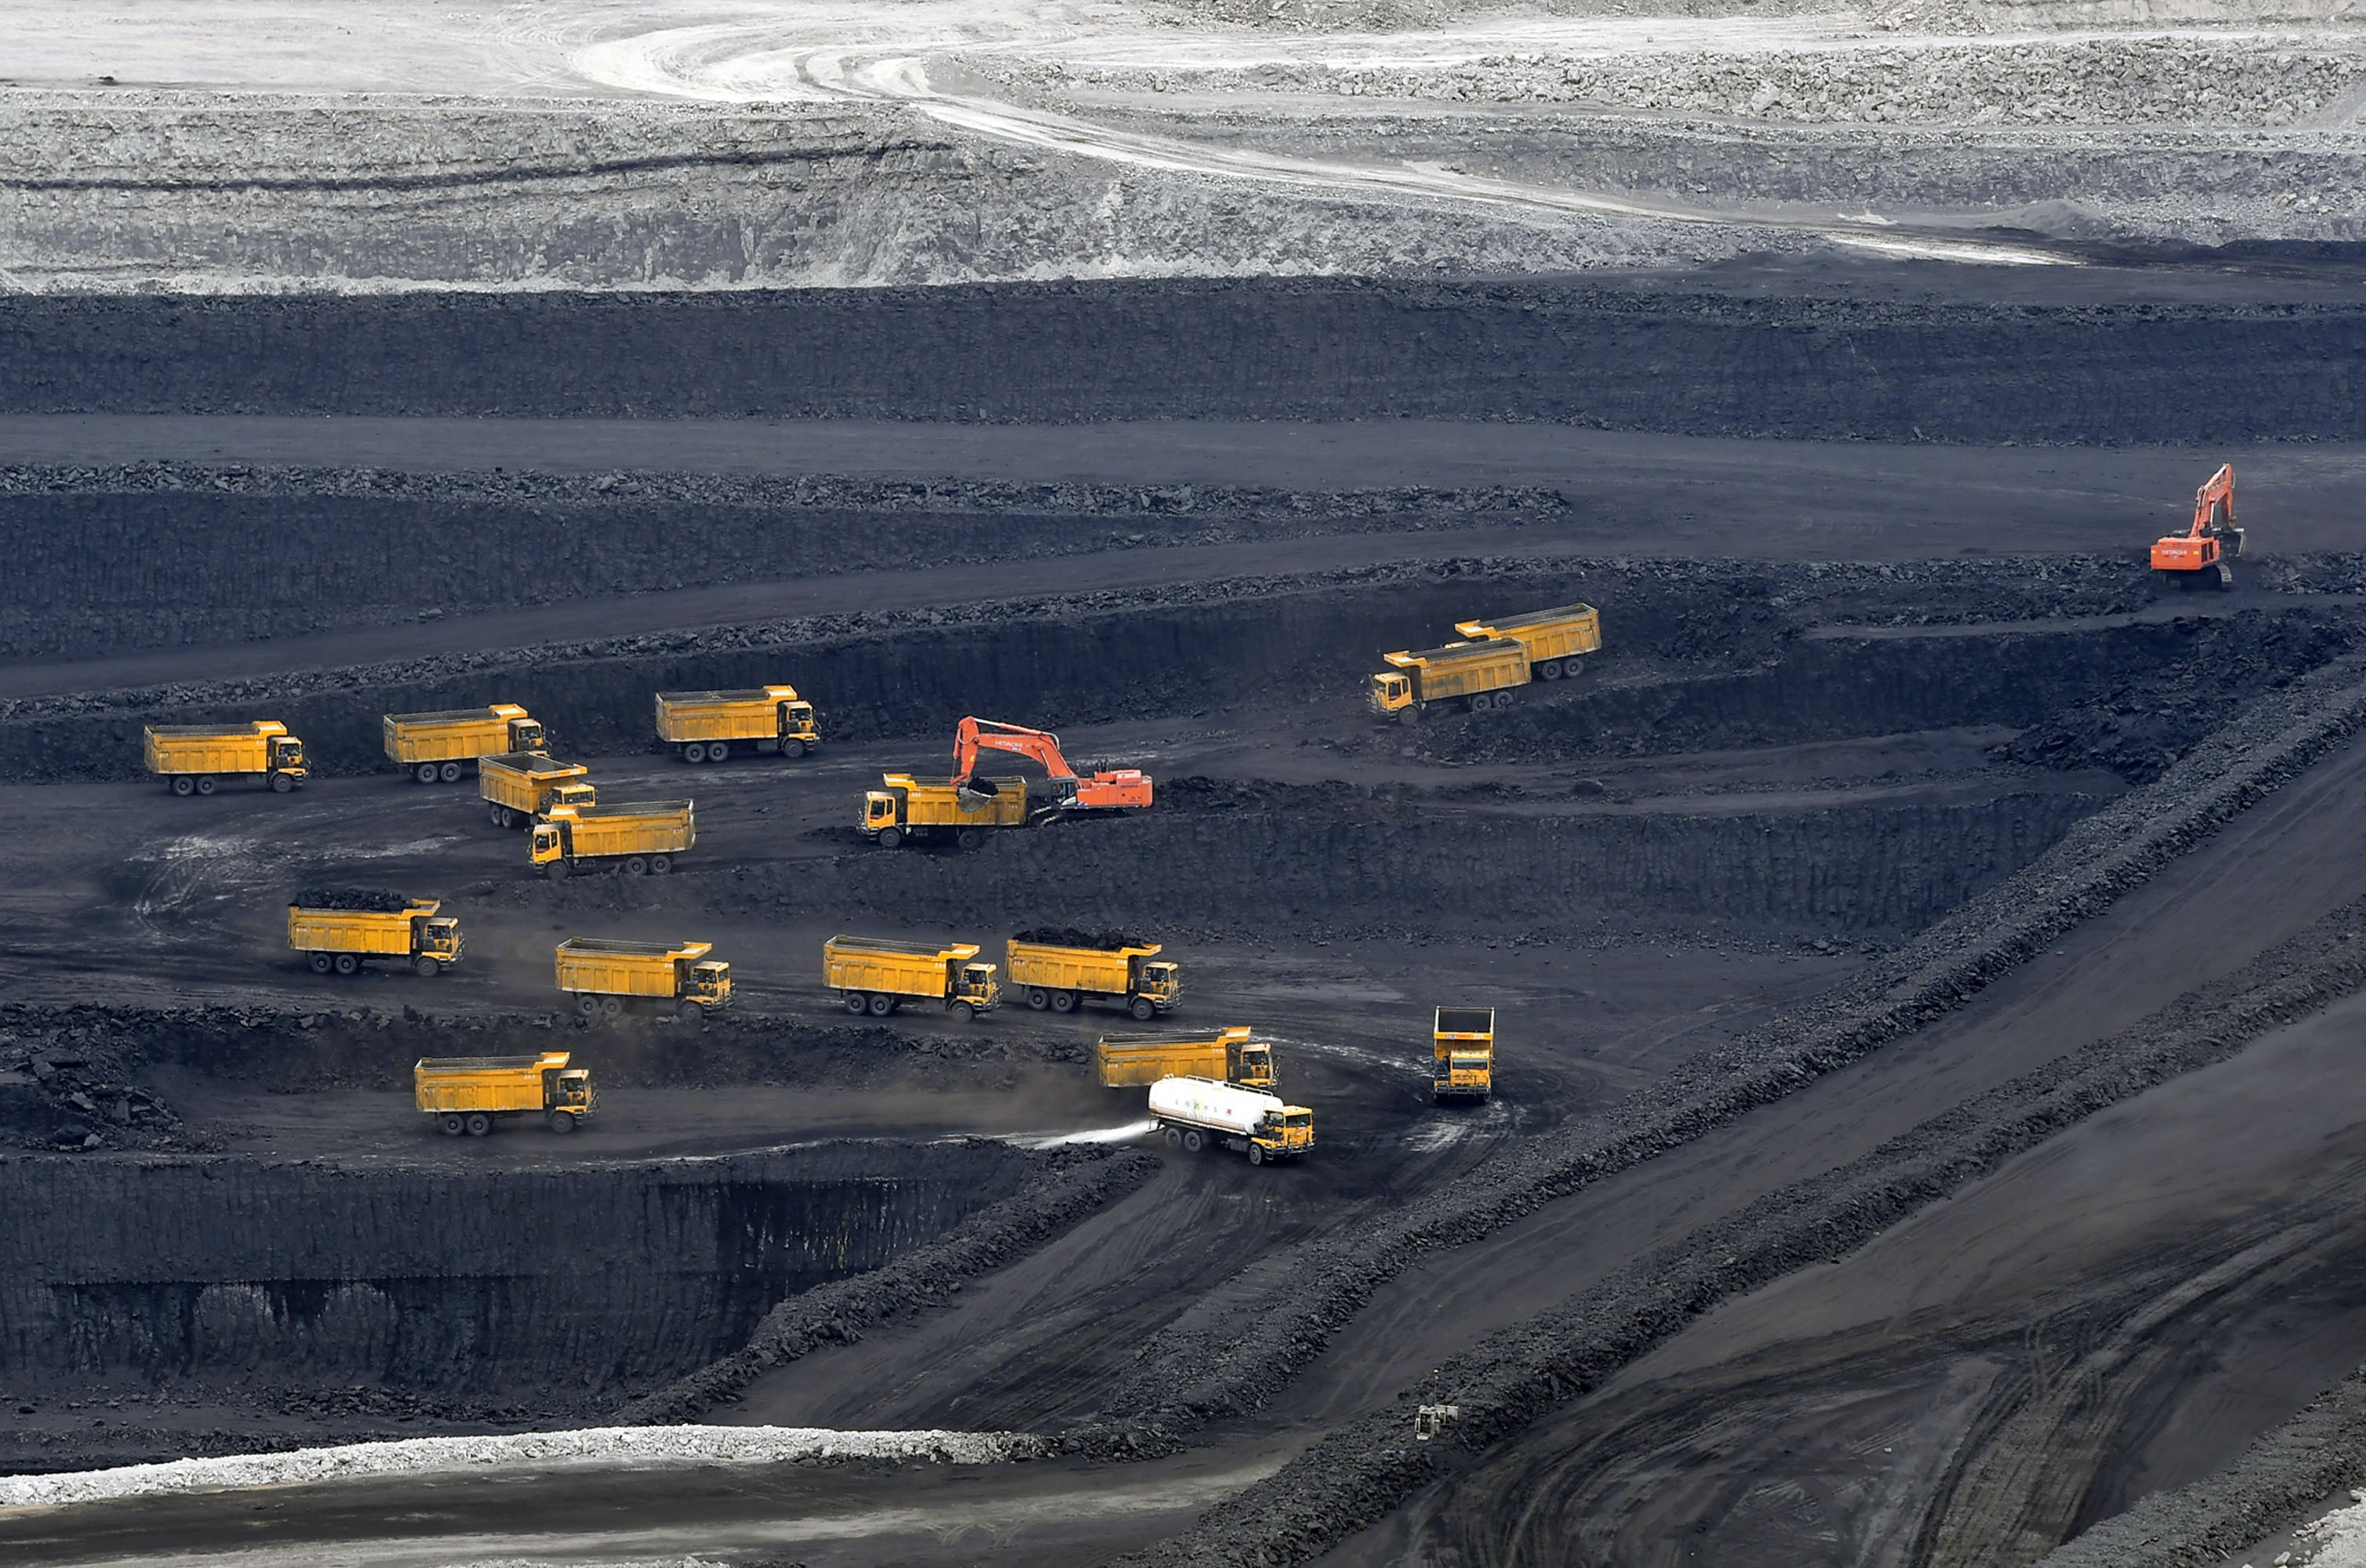 bloomberg.com - China's Far From Done With Coal as Regulator Eases New Plant Ban